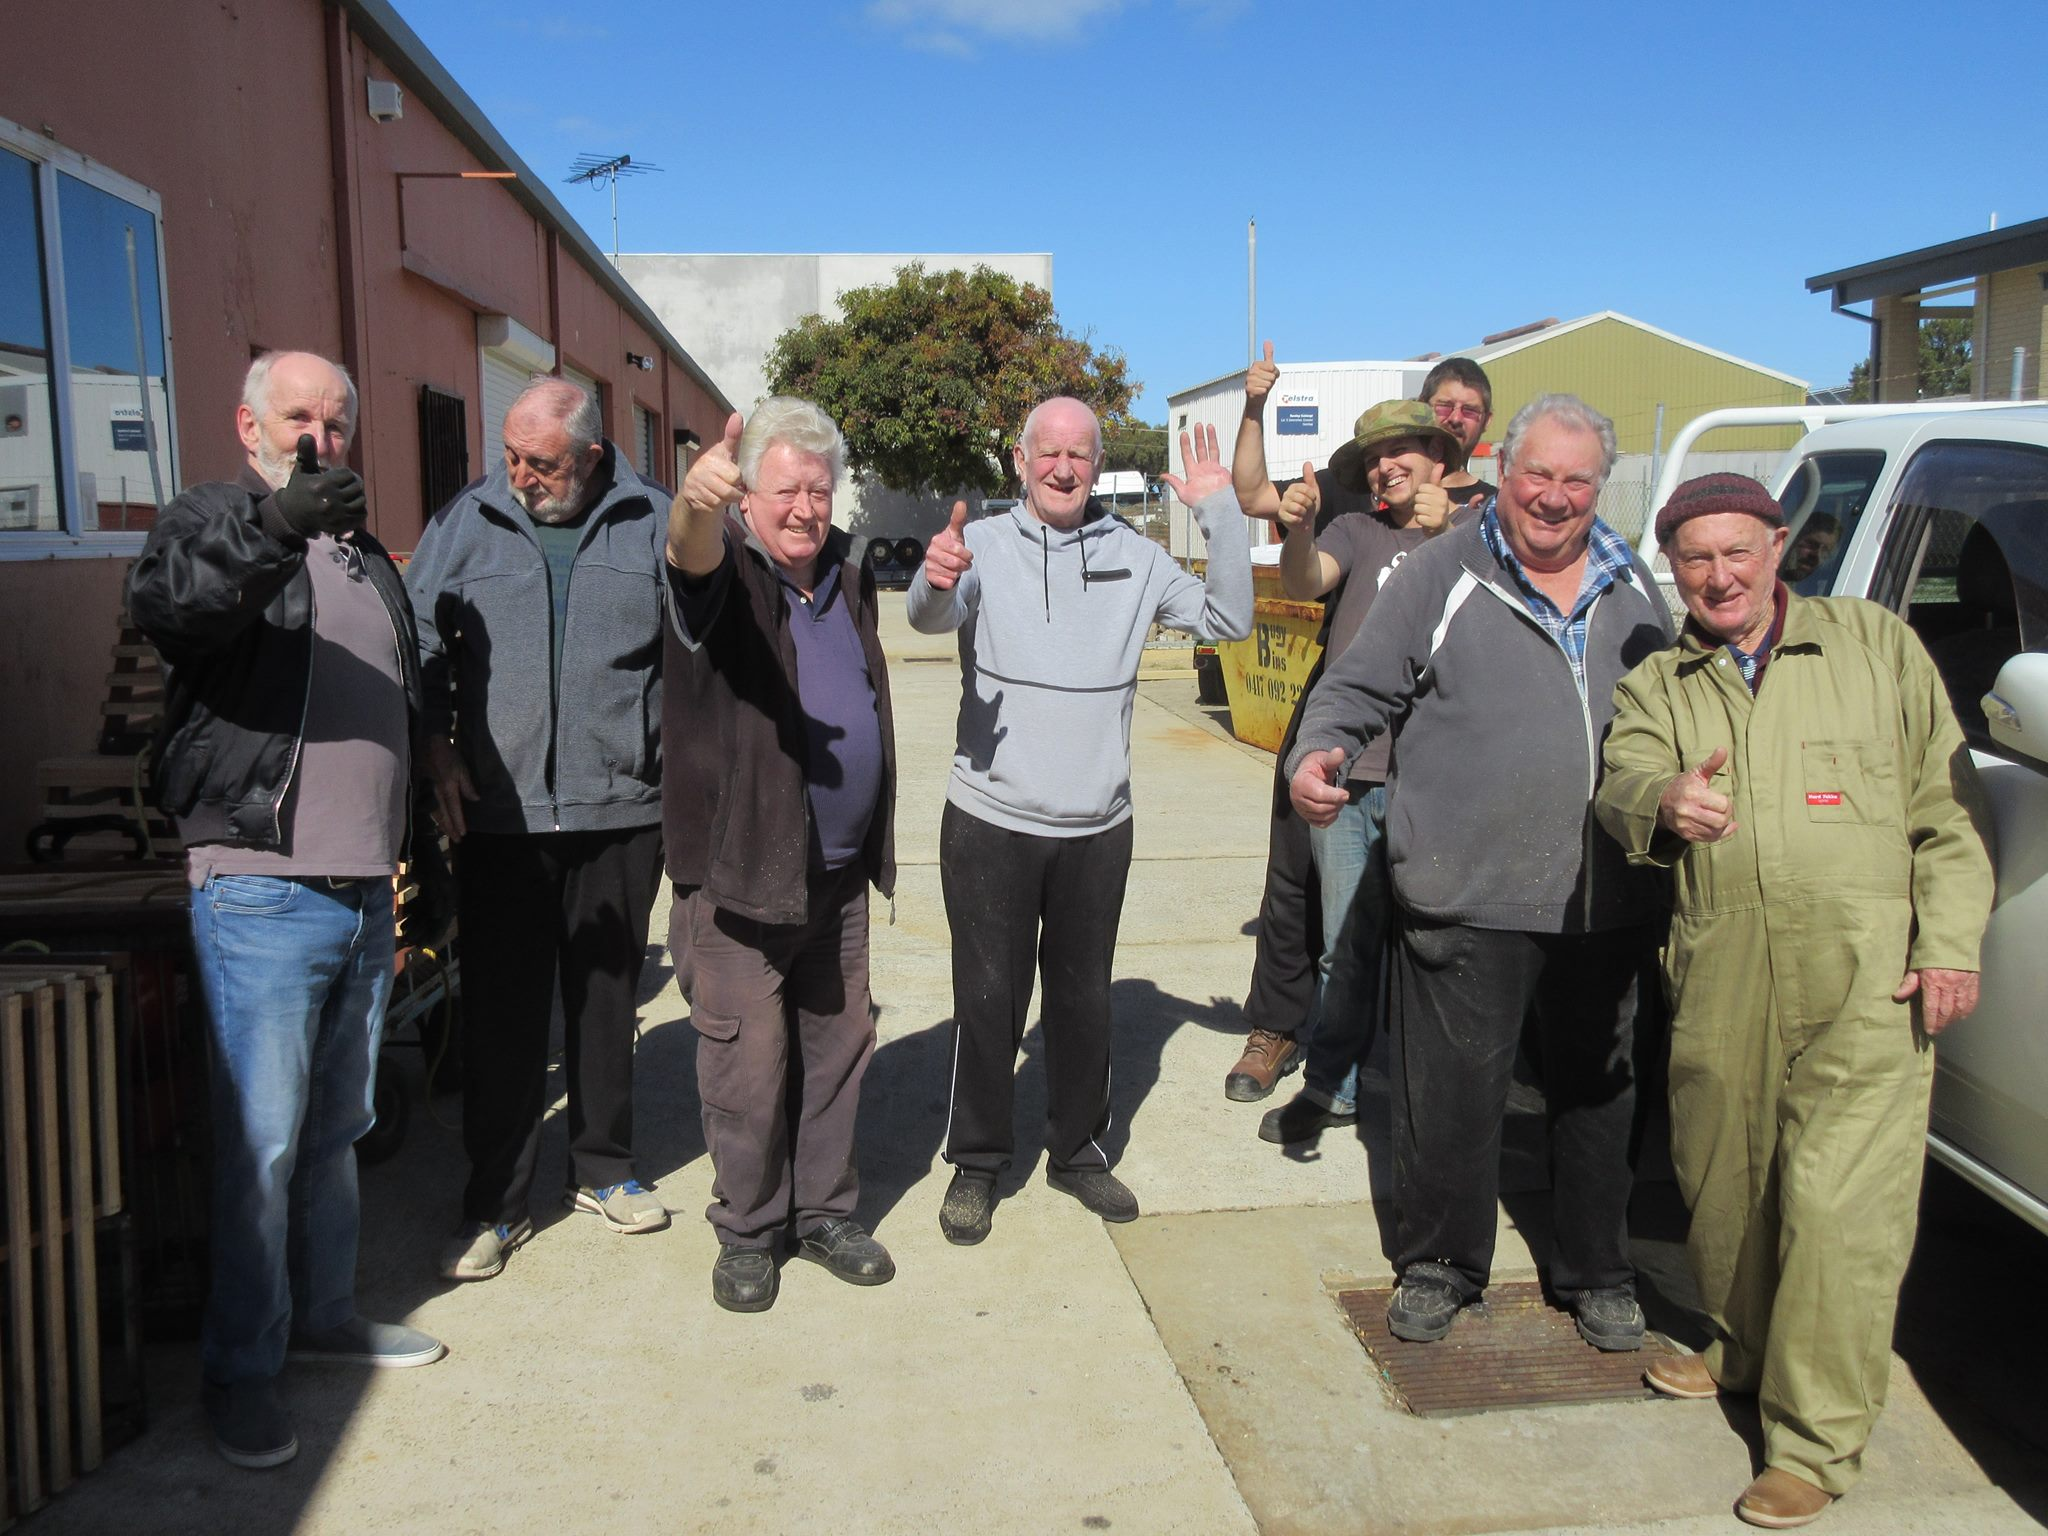 Yanchep Men's Shed - thumbs up.jpg